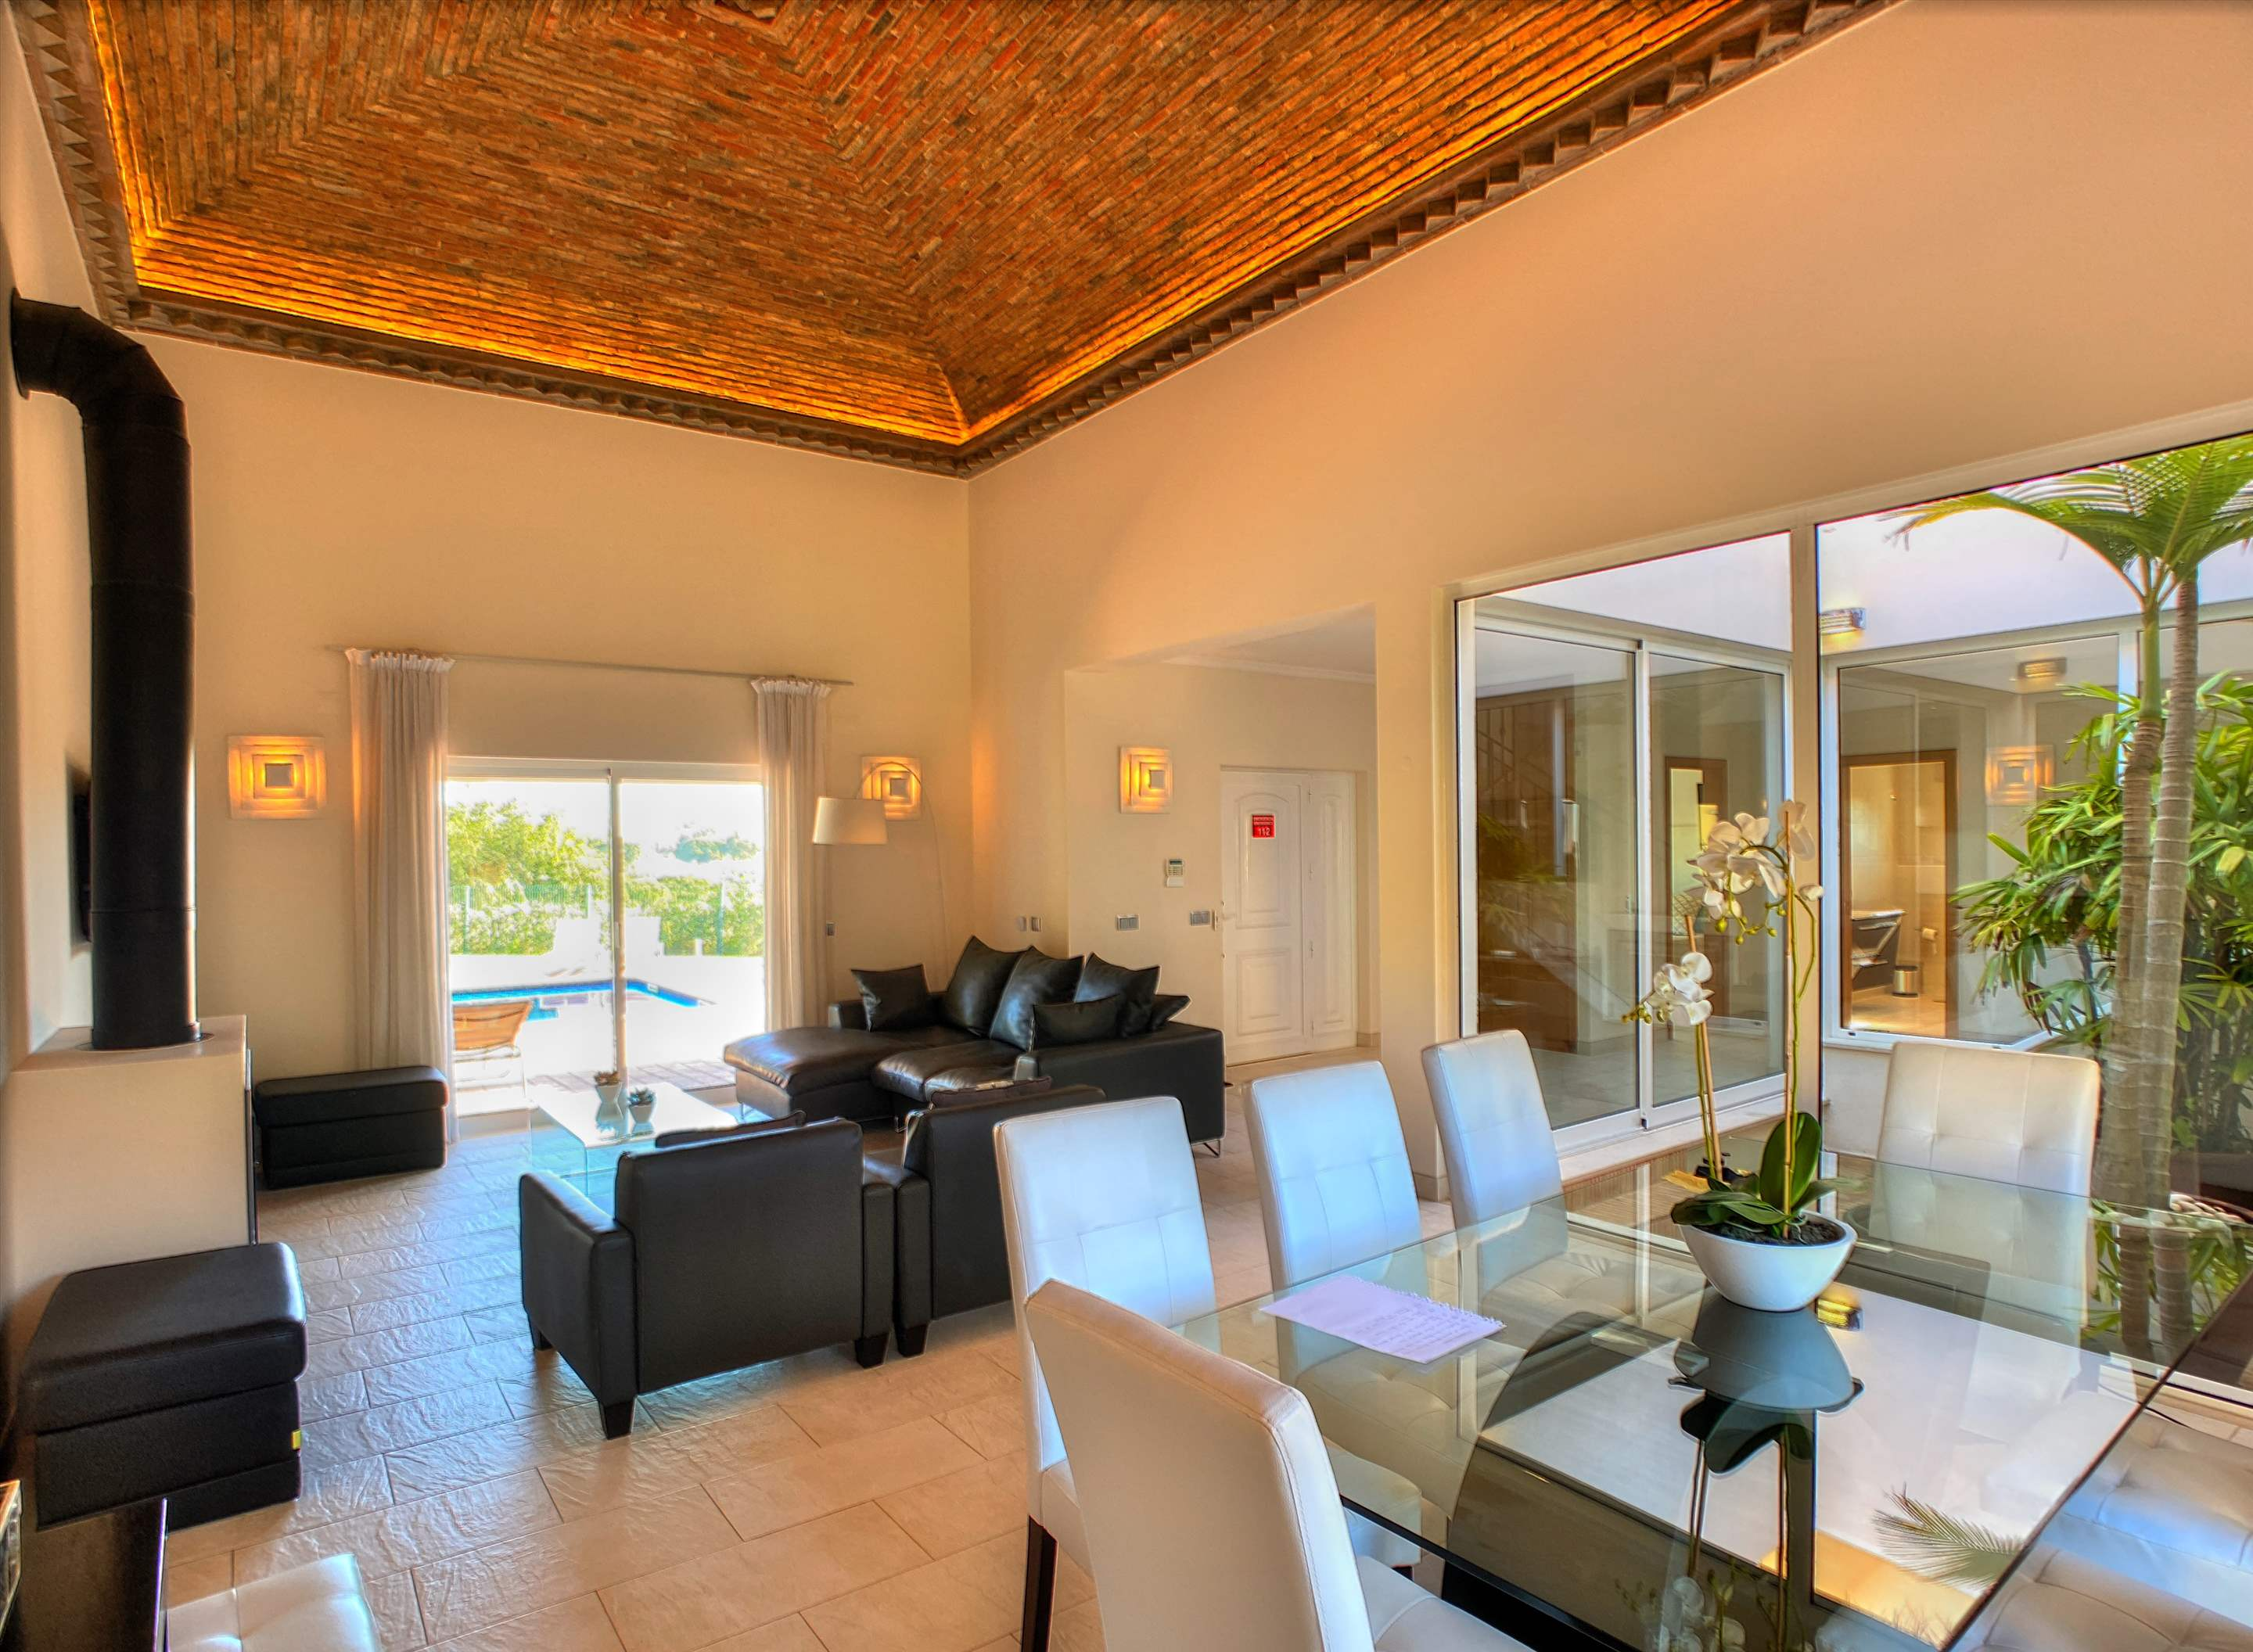 The Ocean Villas, 5 bedroom villa in Gale, Vale da Parra and Guia, Algarve Photo #3